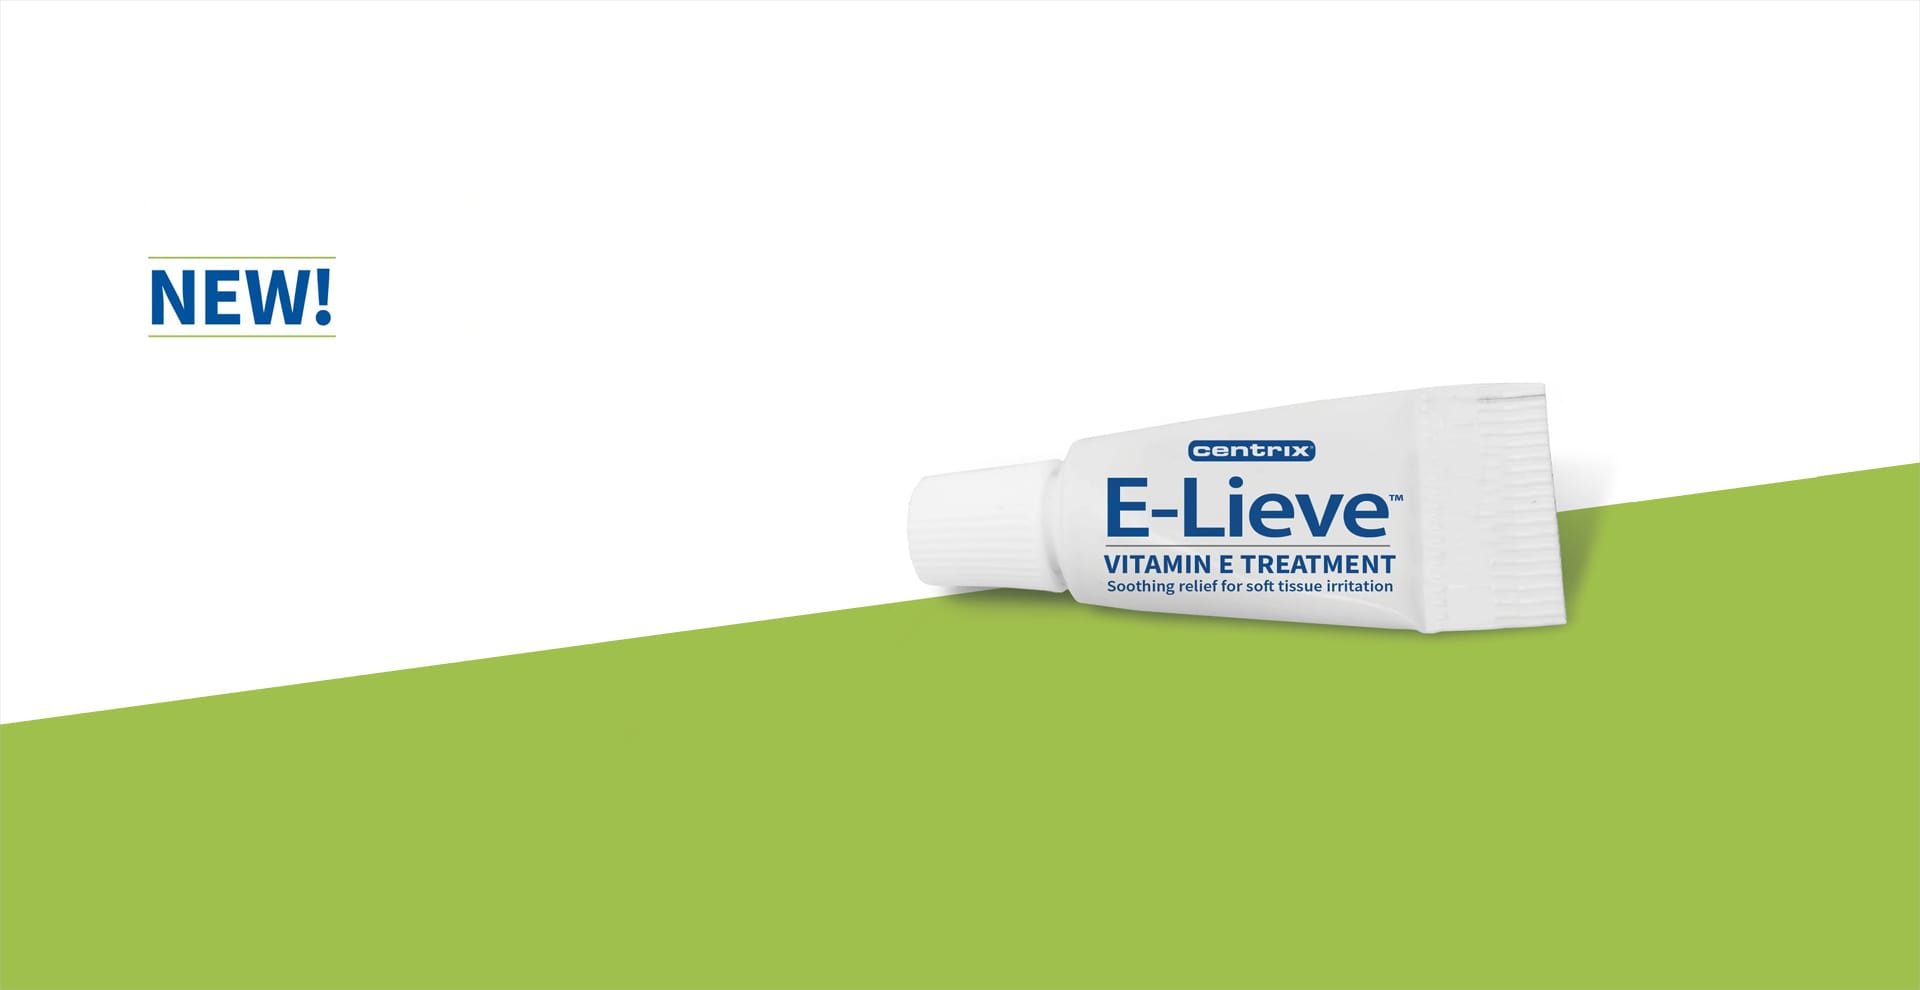 E-Lieve Vitamin E Treatment